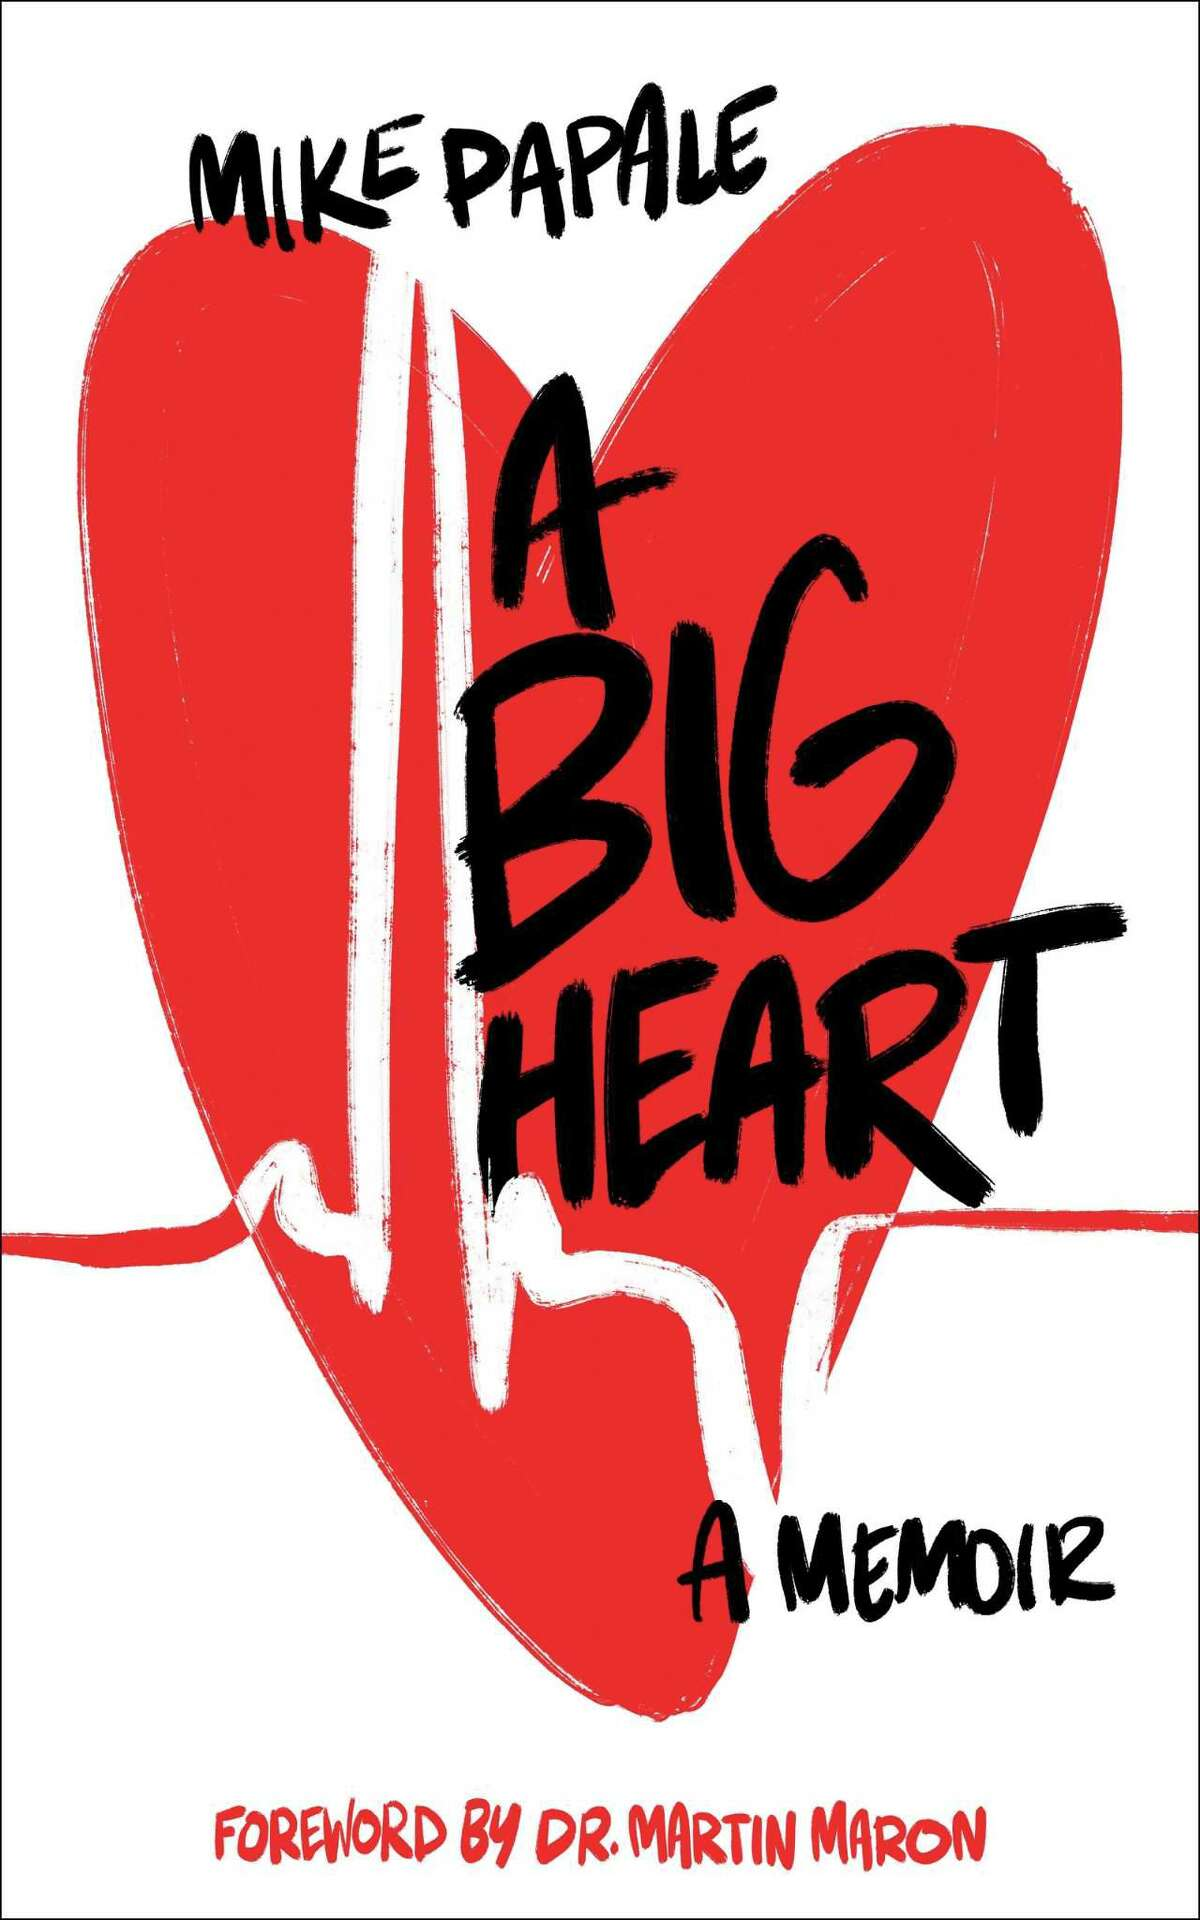 The cover of Mike Papale's new book titled 'A Big Heart' details Papale's battle with heart disease since his late teenage years.